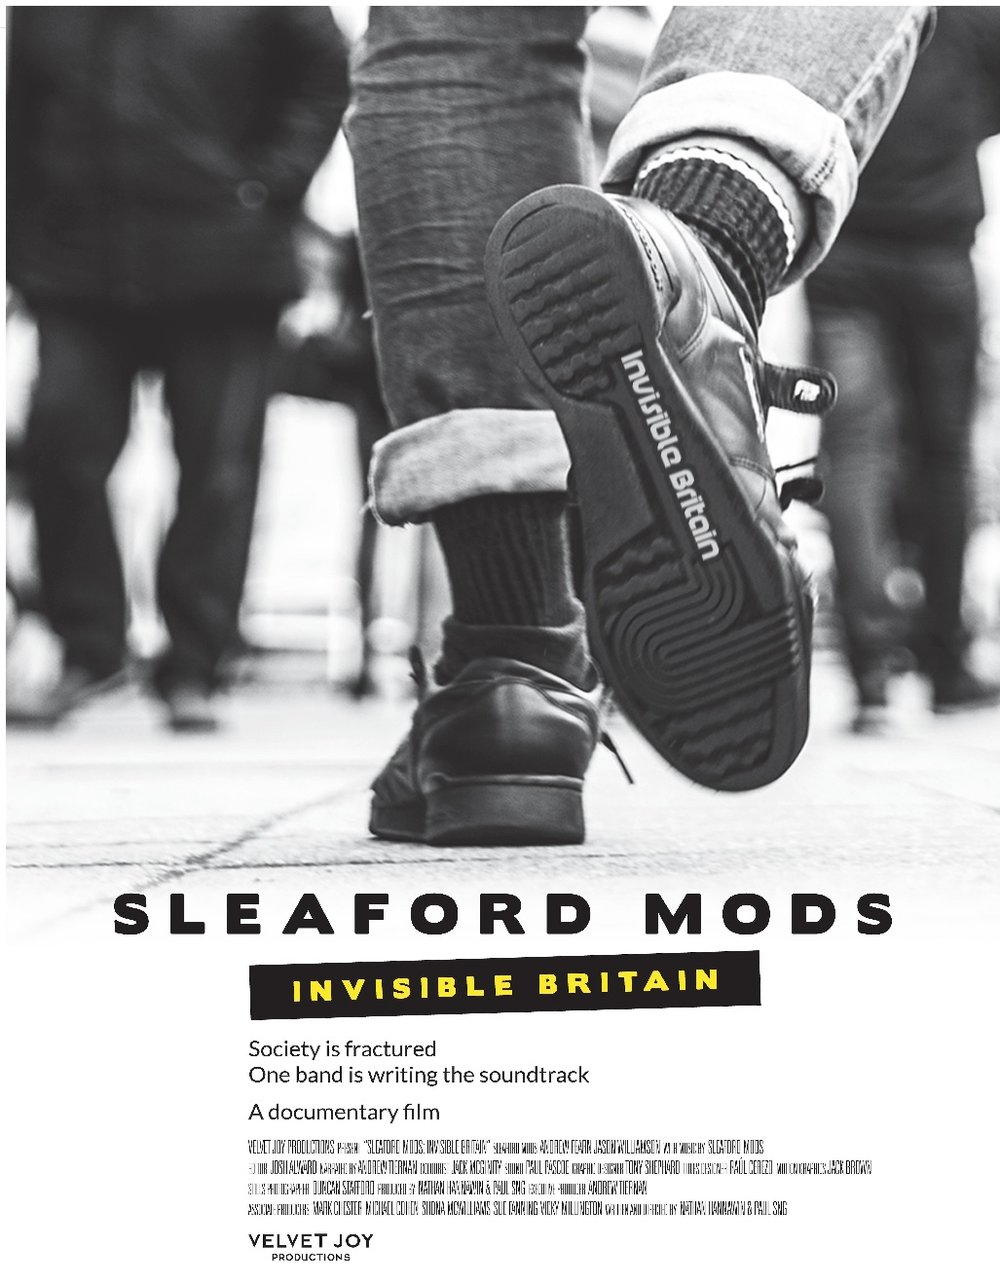 Sleaford Mods Resized.jpg